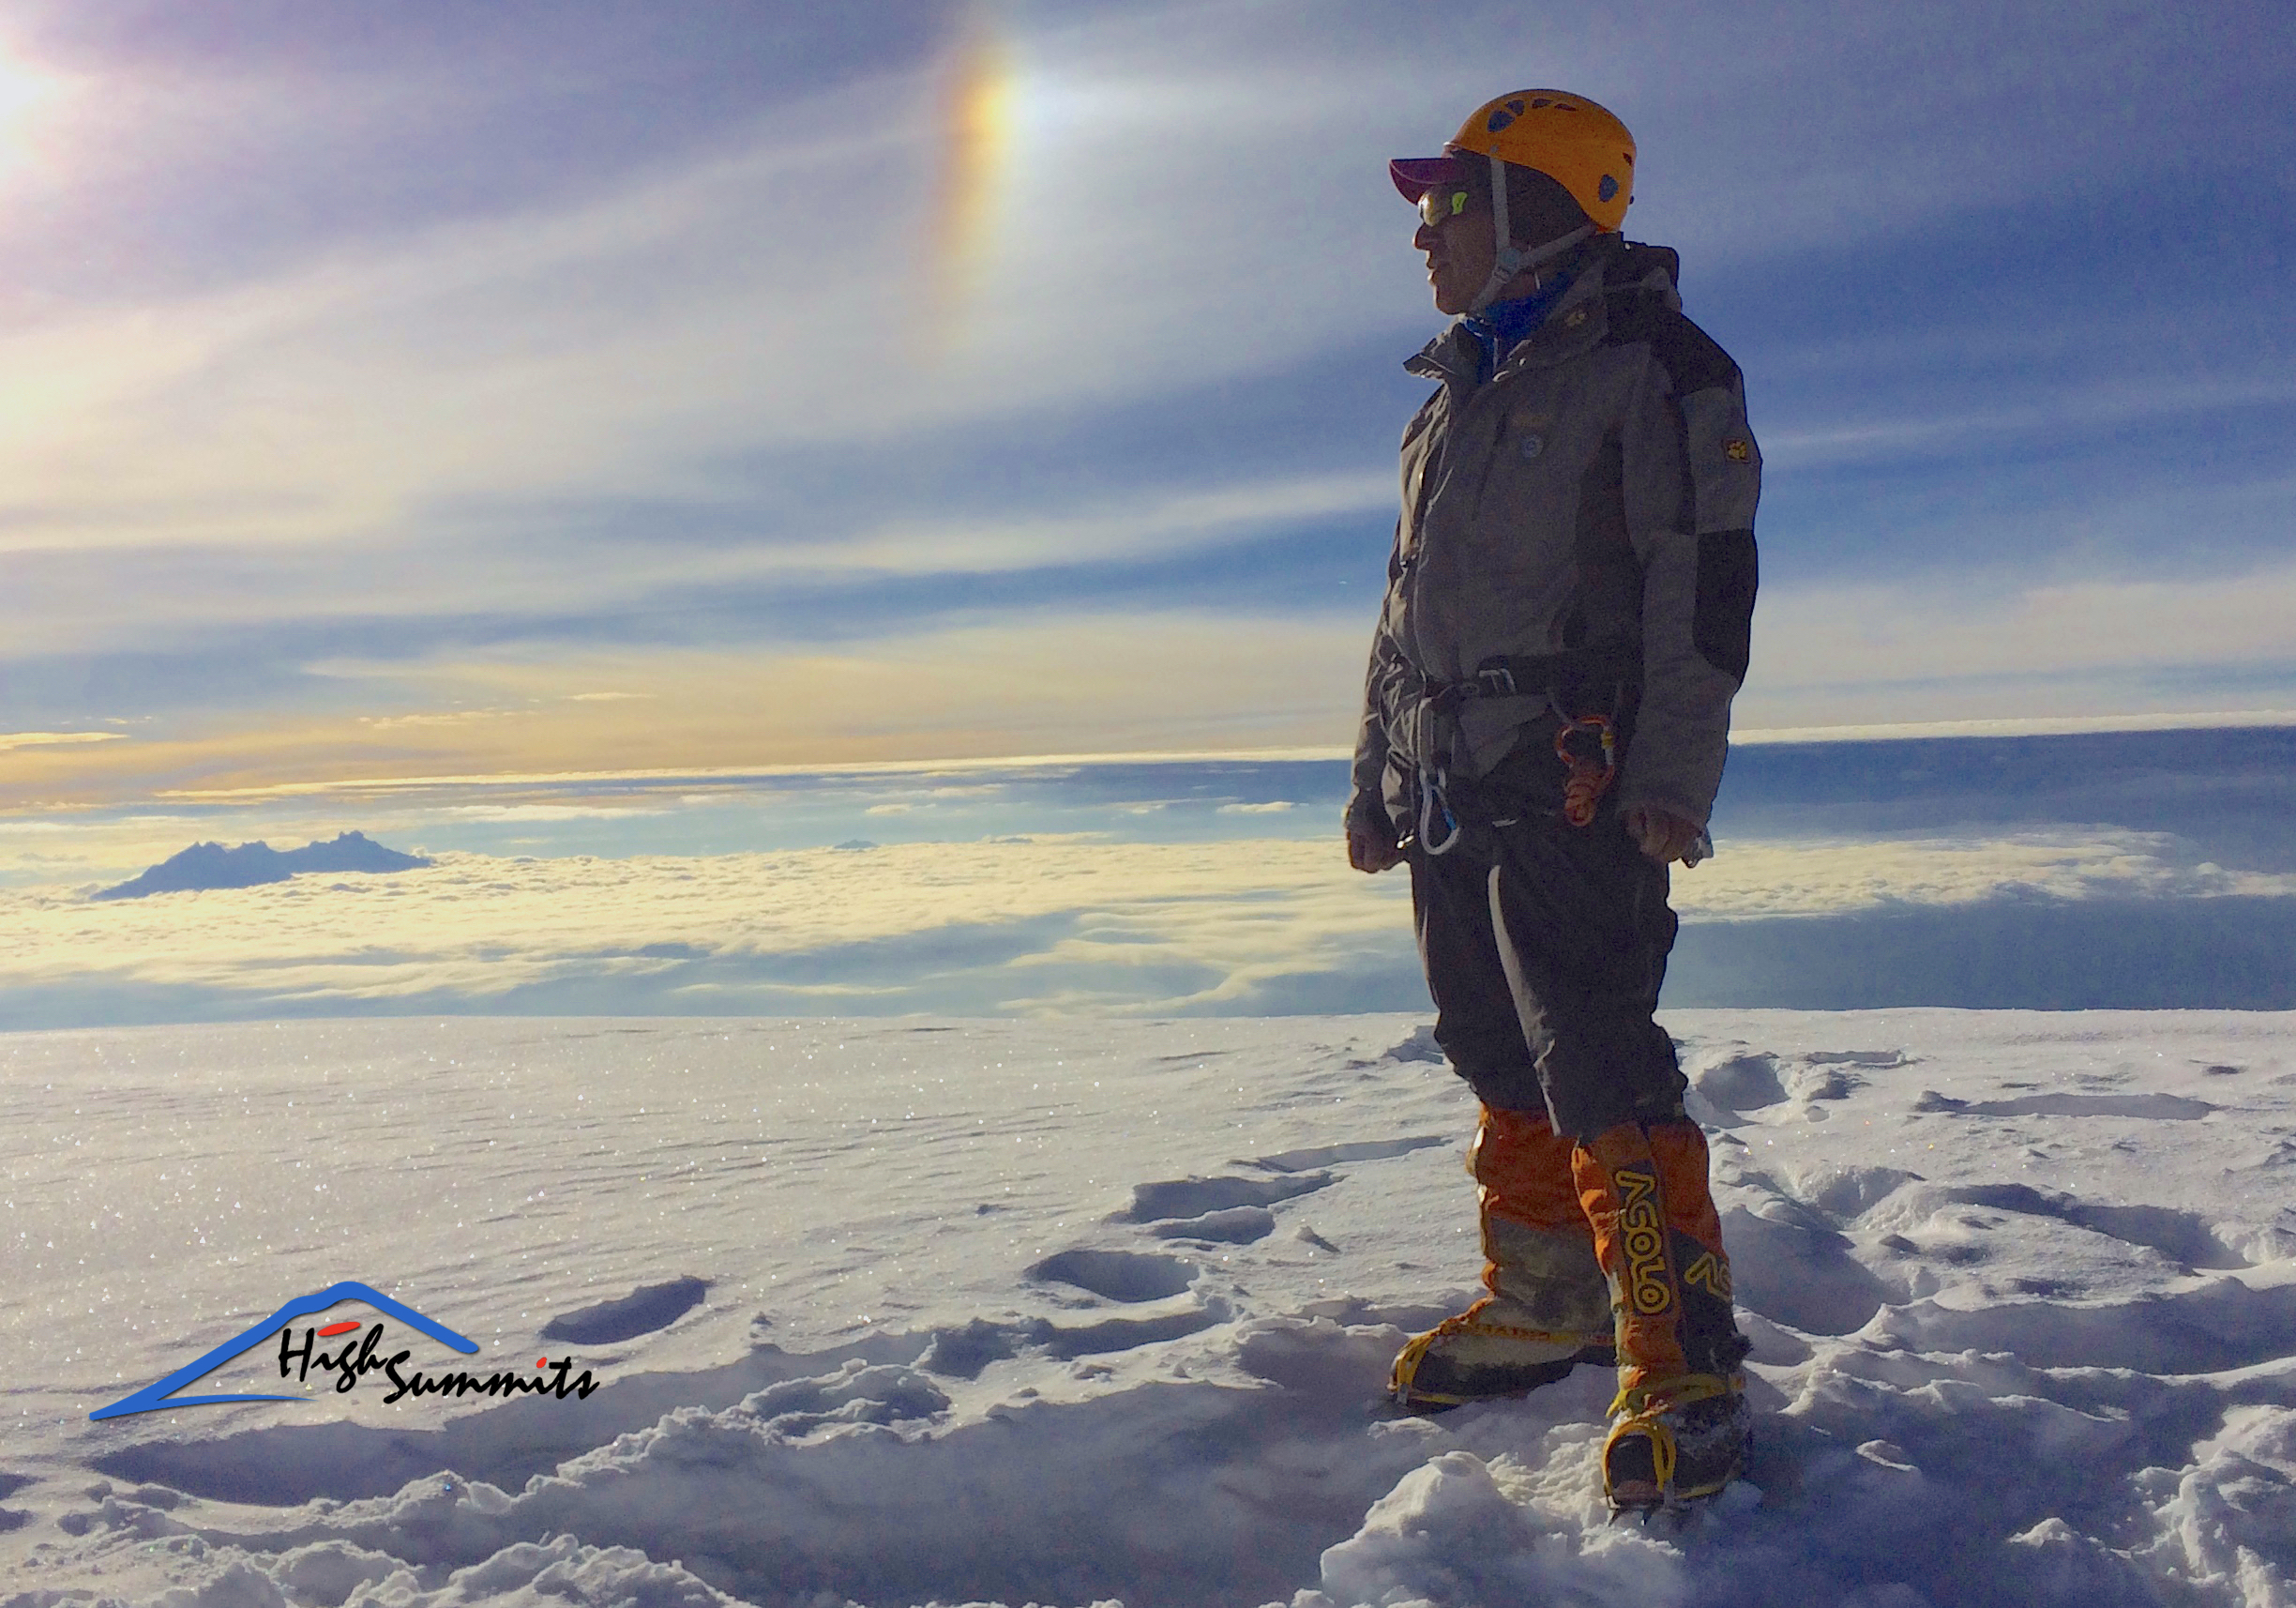 Summit Chimborazo, Abraham Chuquimarca mountain guide ASEGUIM/IFMGA